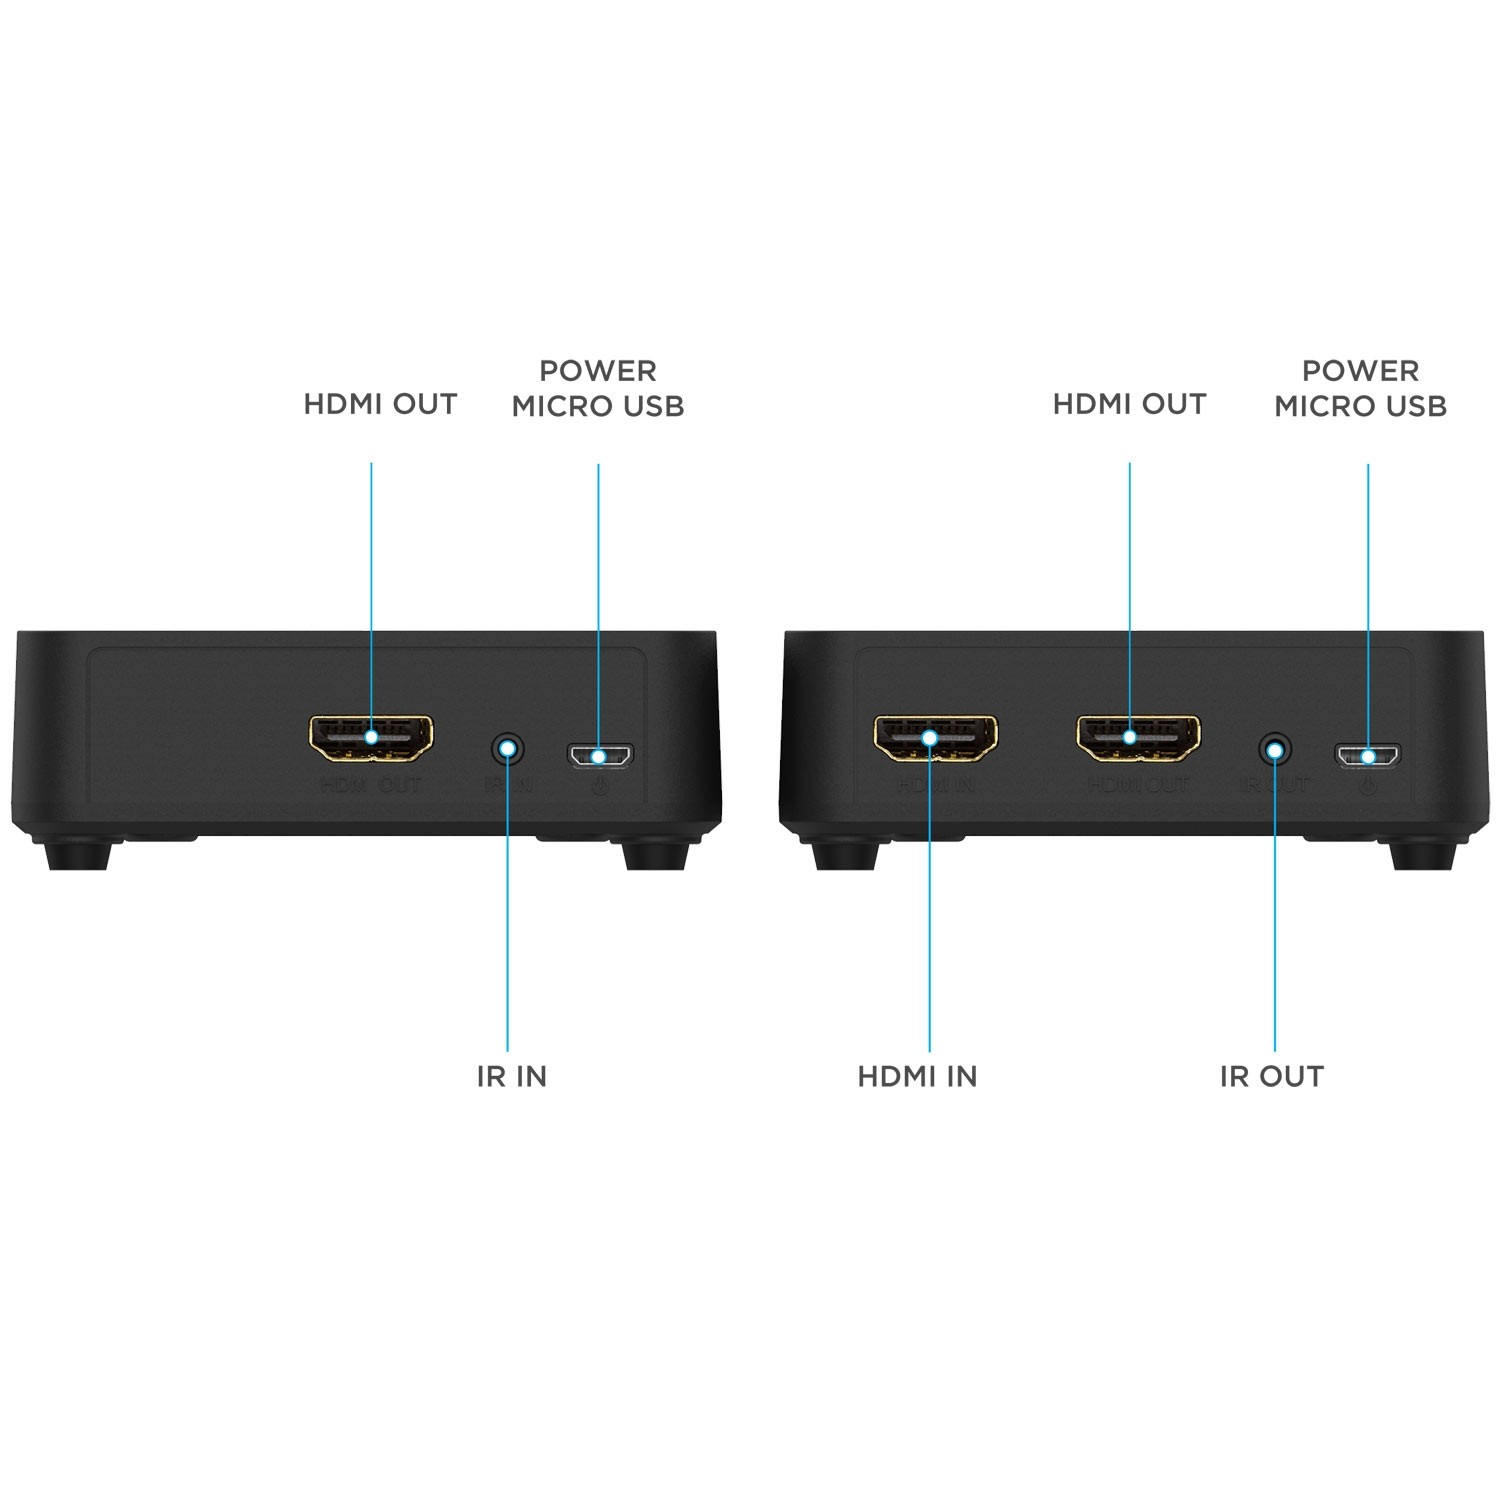 Orion Home Wireless Hd Video Transmitter Receiver Nyrius Images Hdmi Connector Pinout